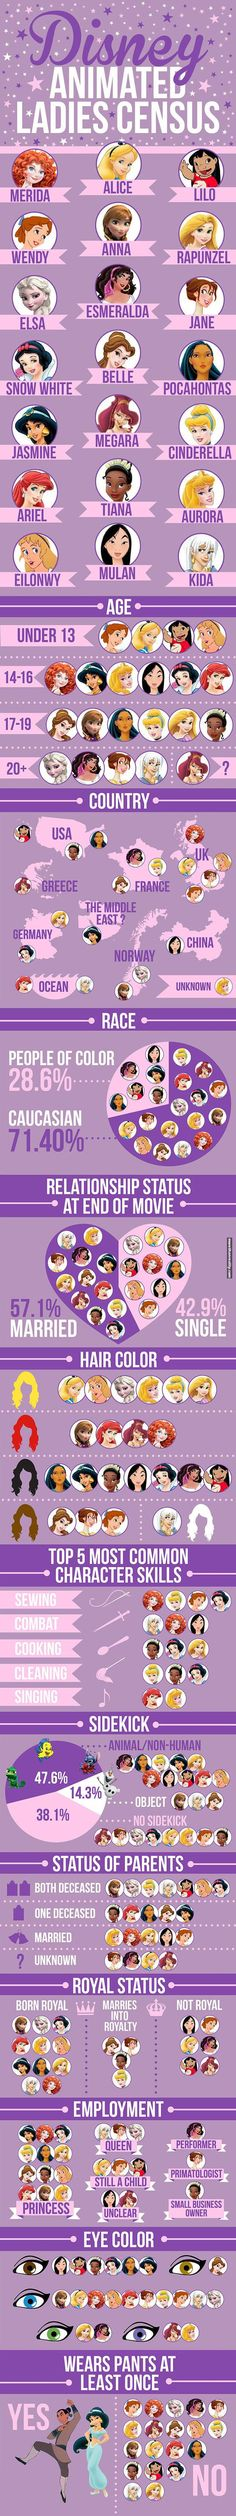 Disney princess statistics